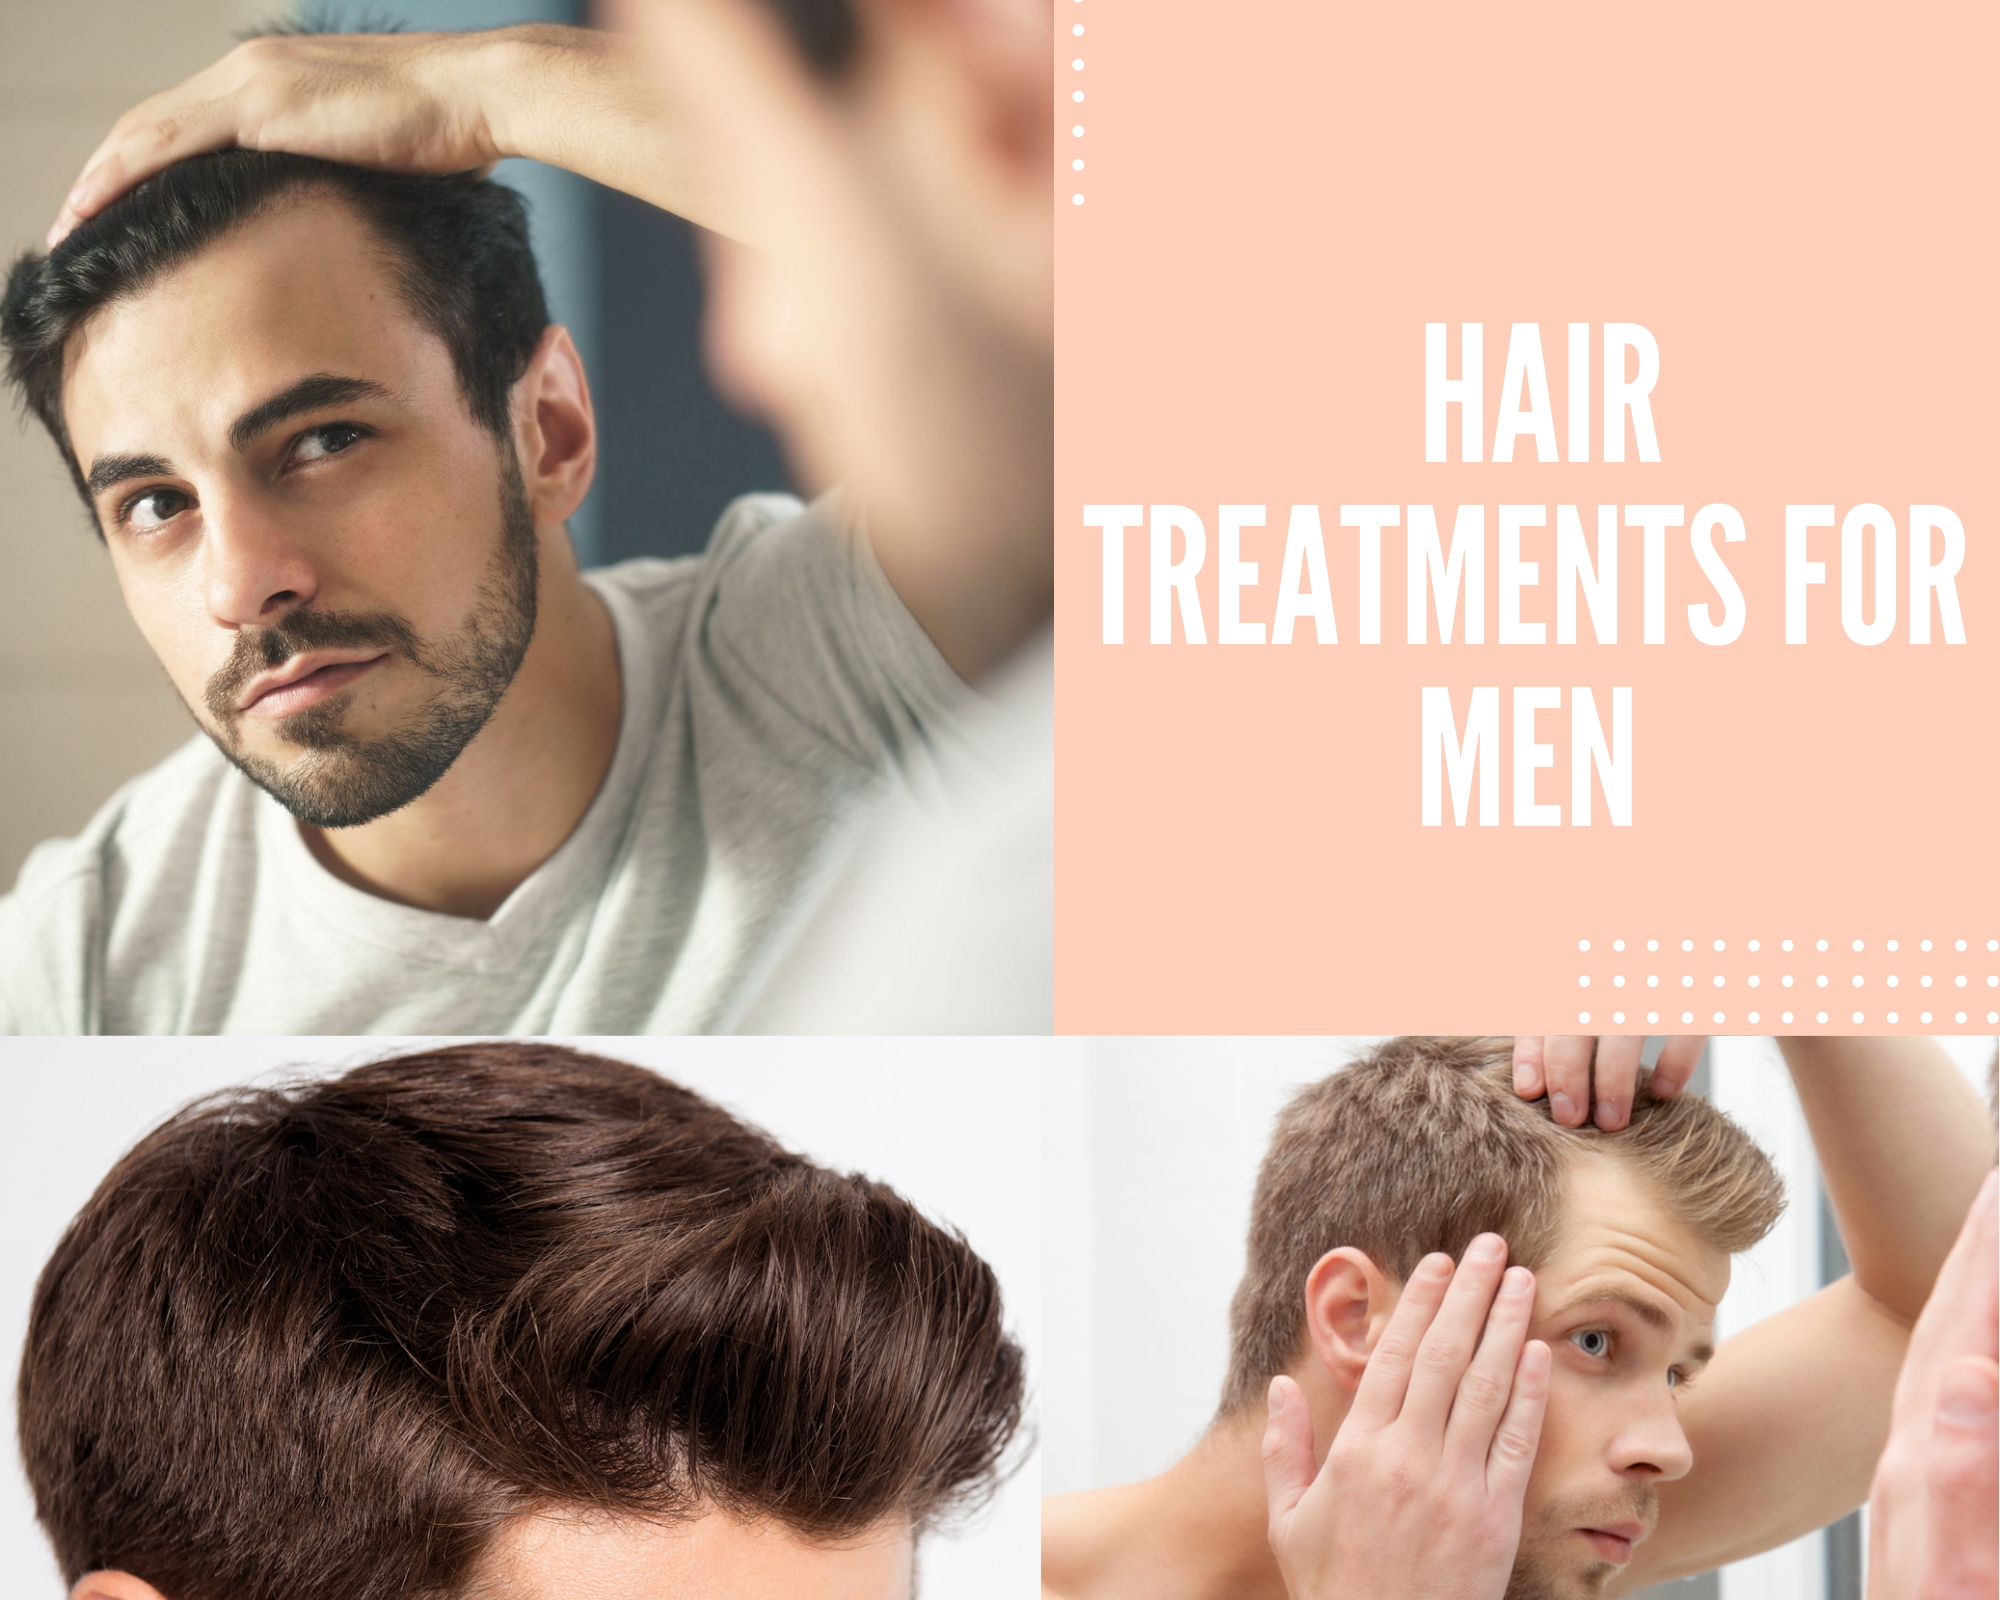 Hair treatments for men